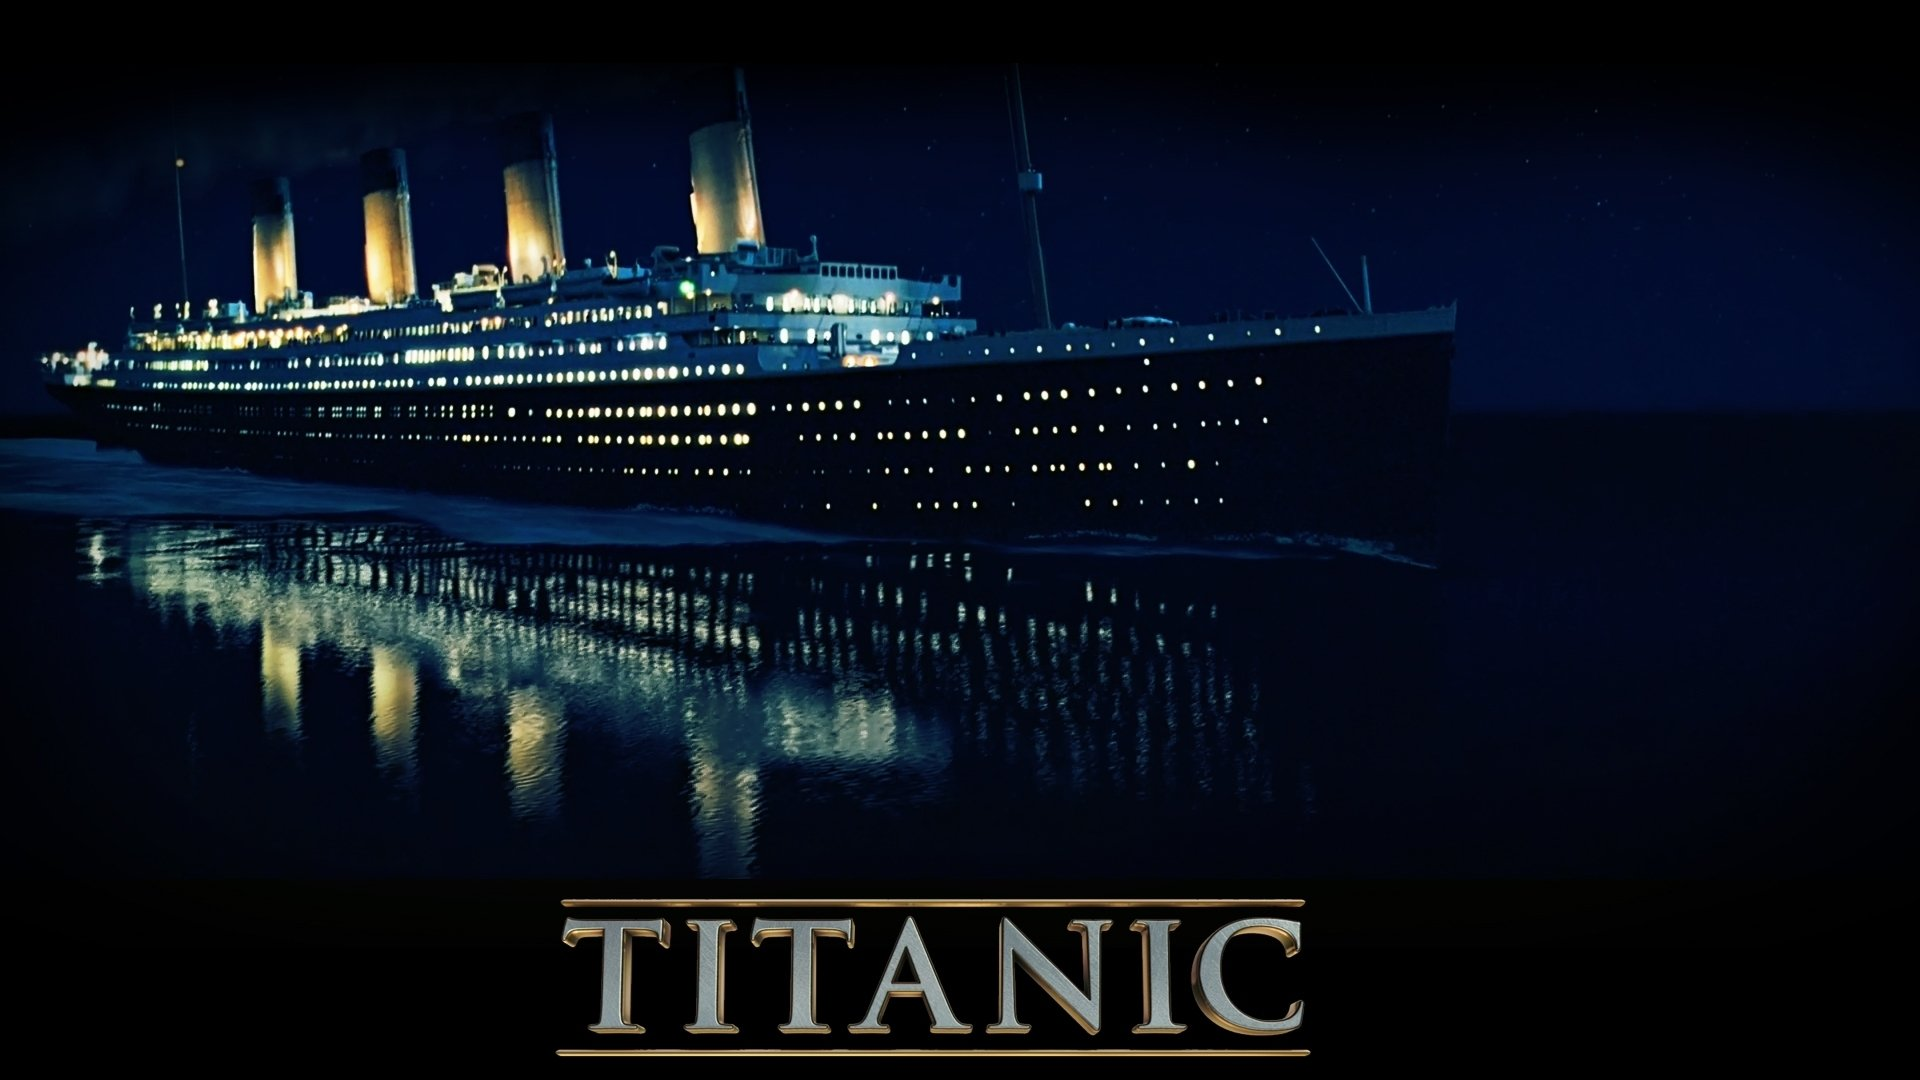 23 titanic hd wallpapers | background images - wallpaper abyss